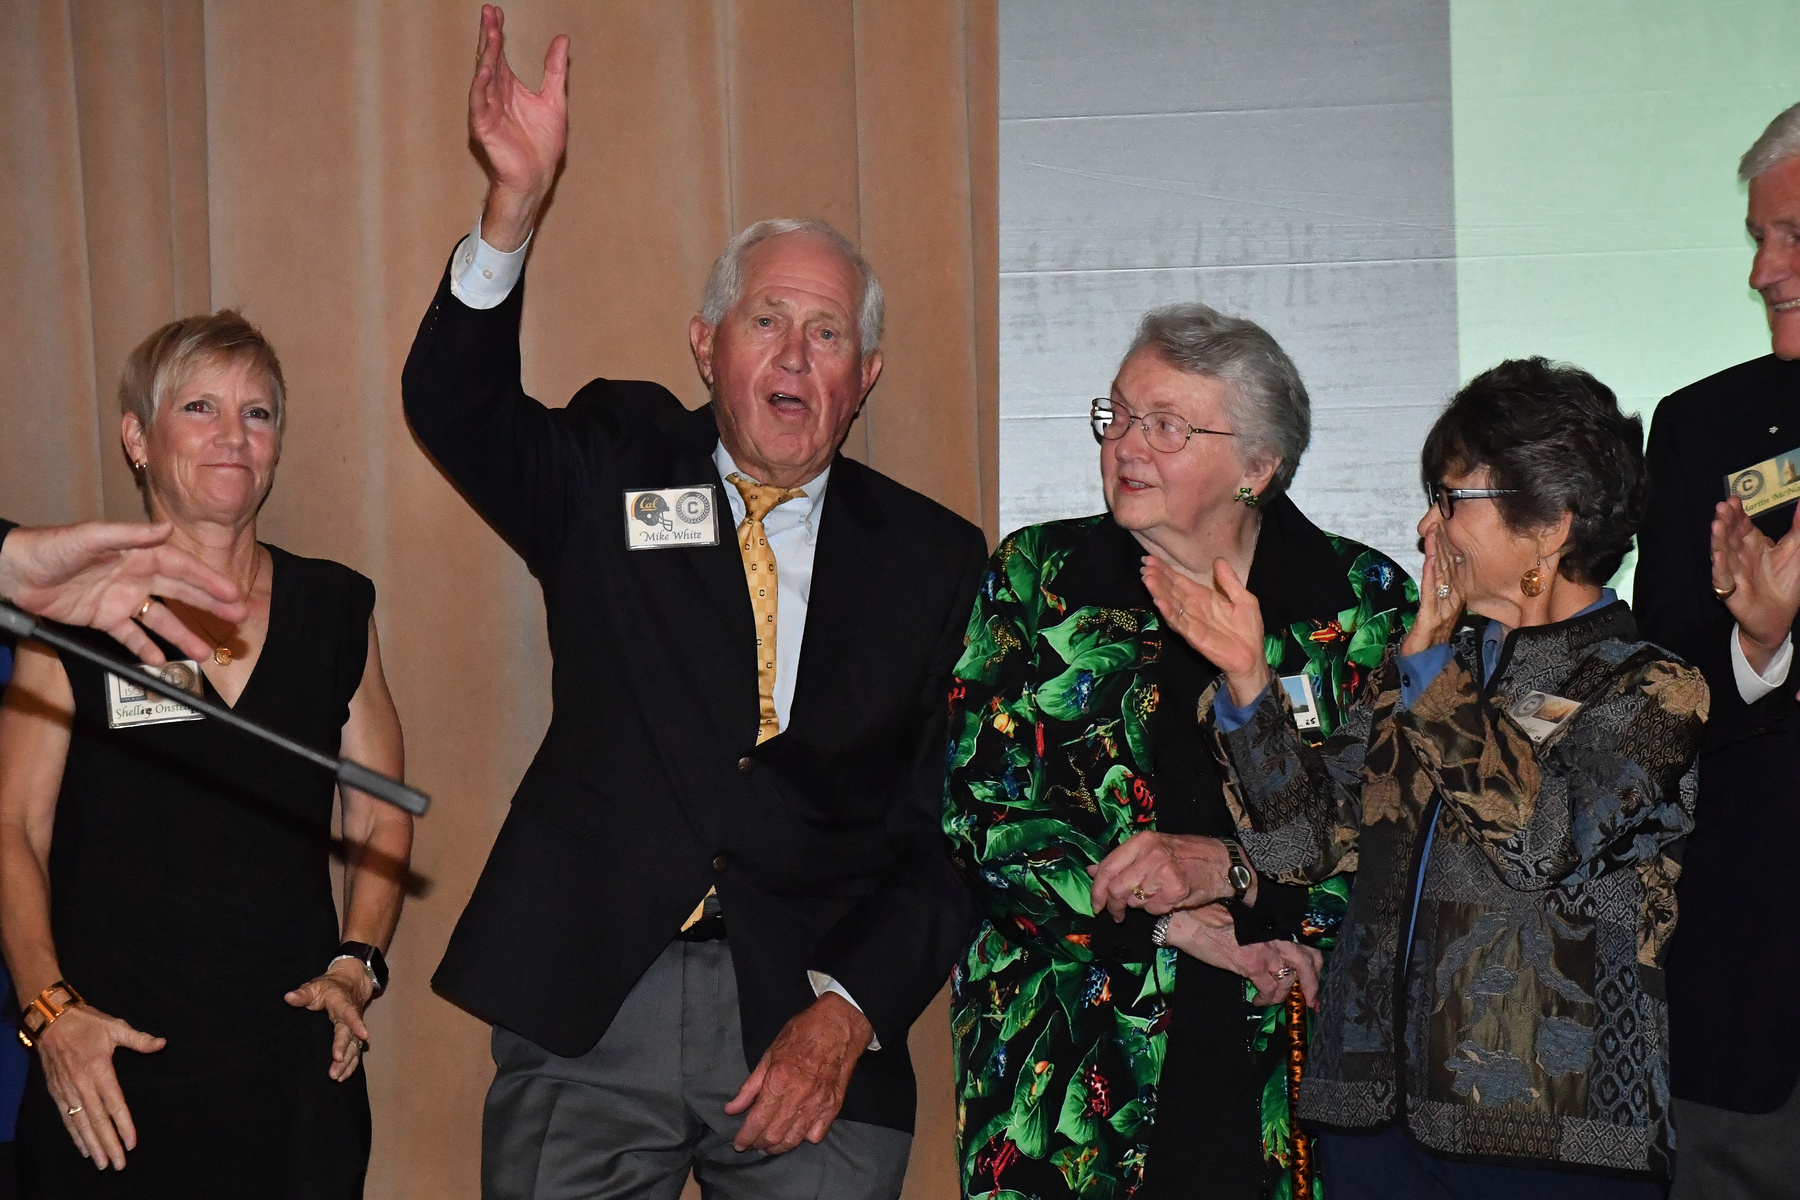 2018 Cal Hall of Fame ceremony _20181026_190842_MarcusE-(ZF-0861-35620-1-085).jpg